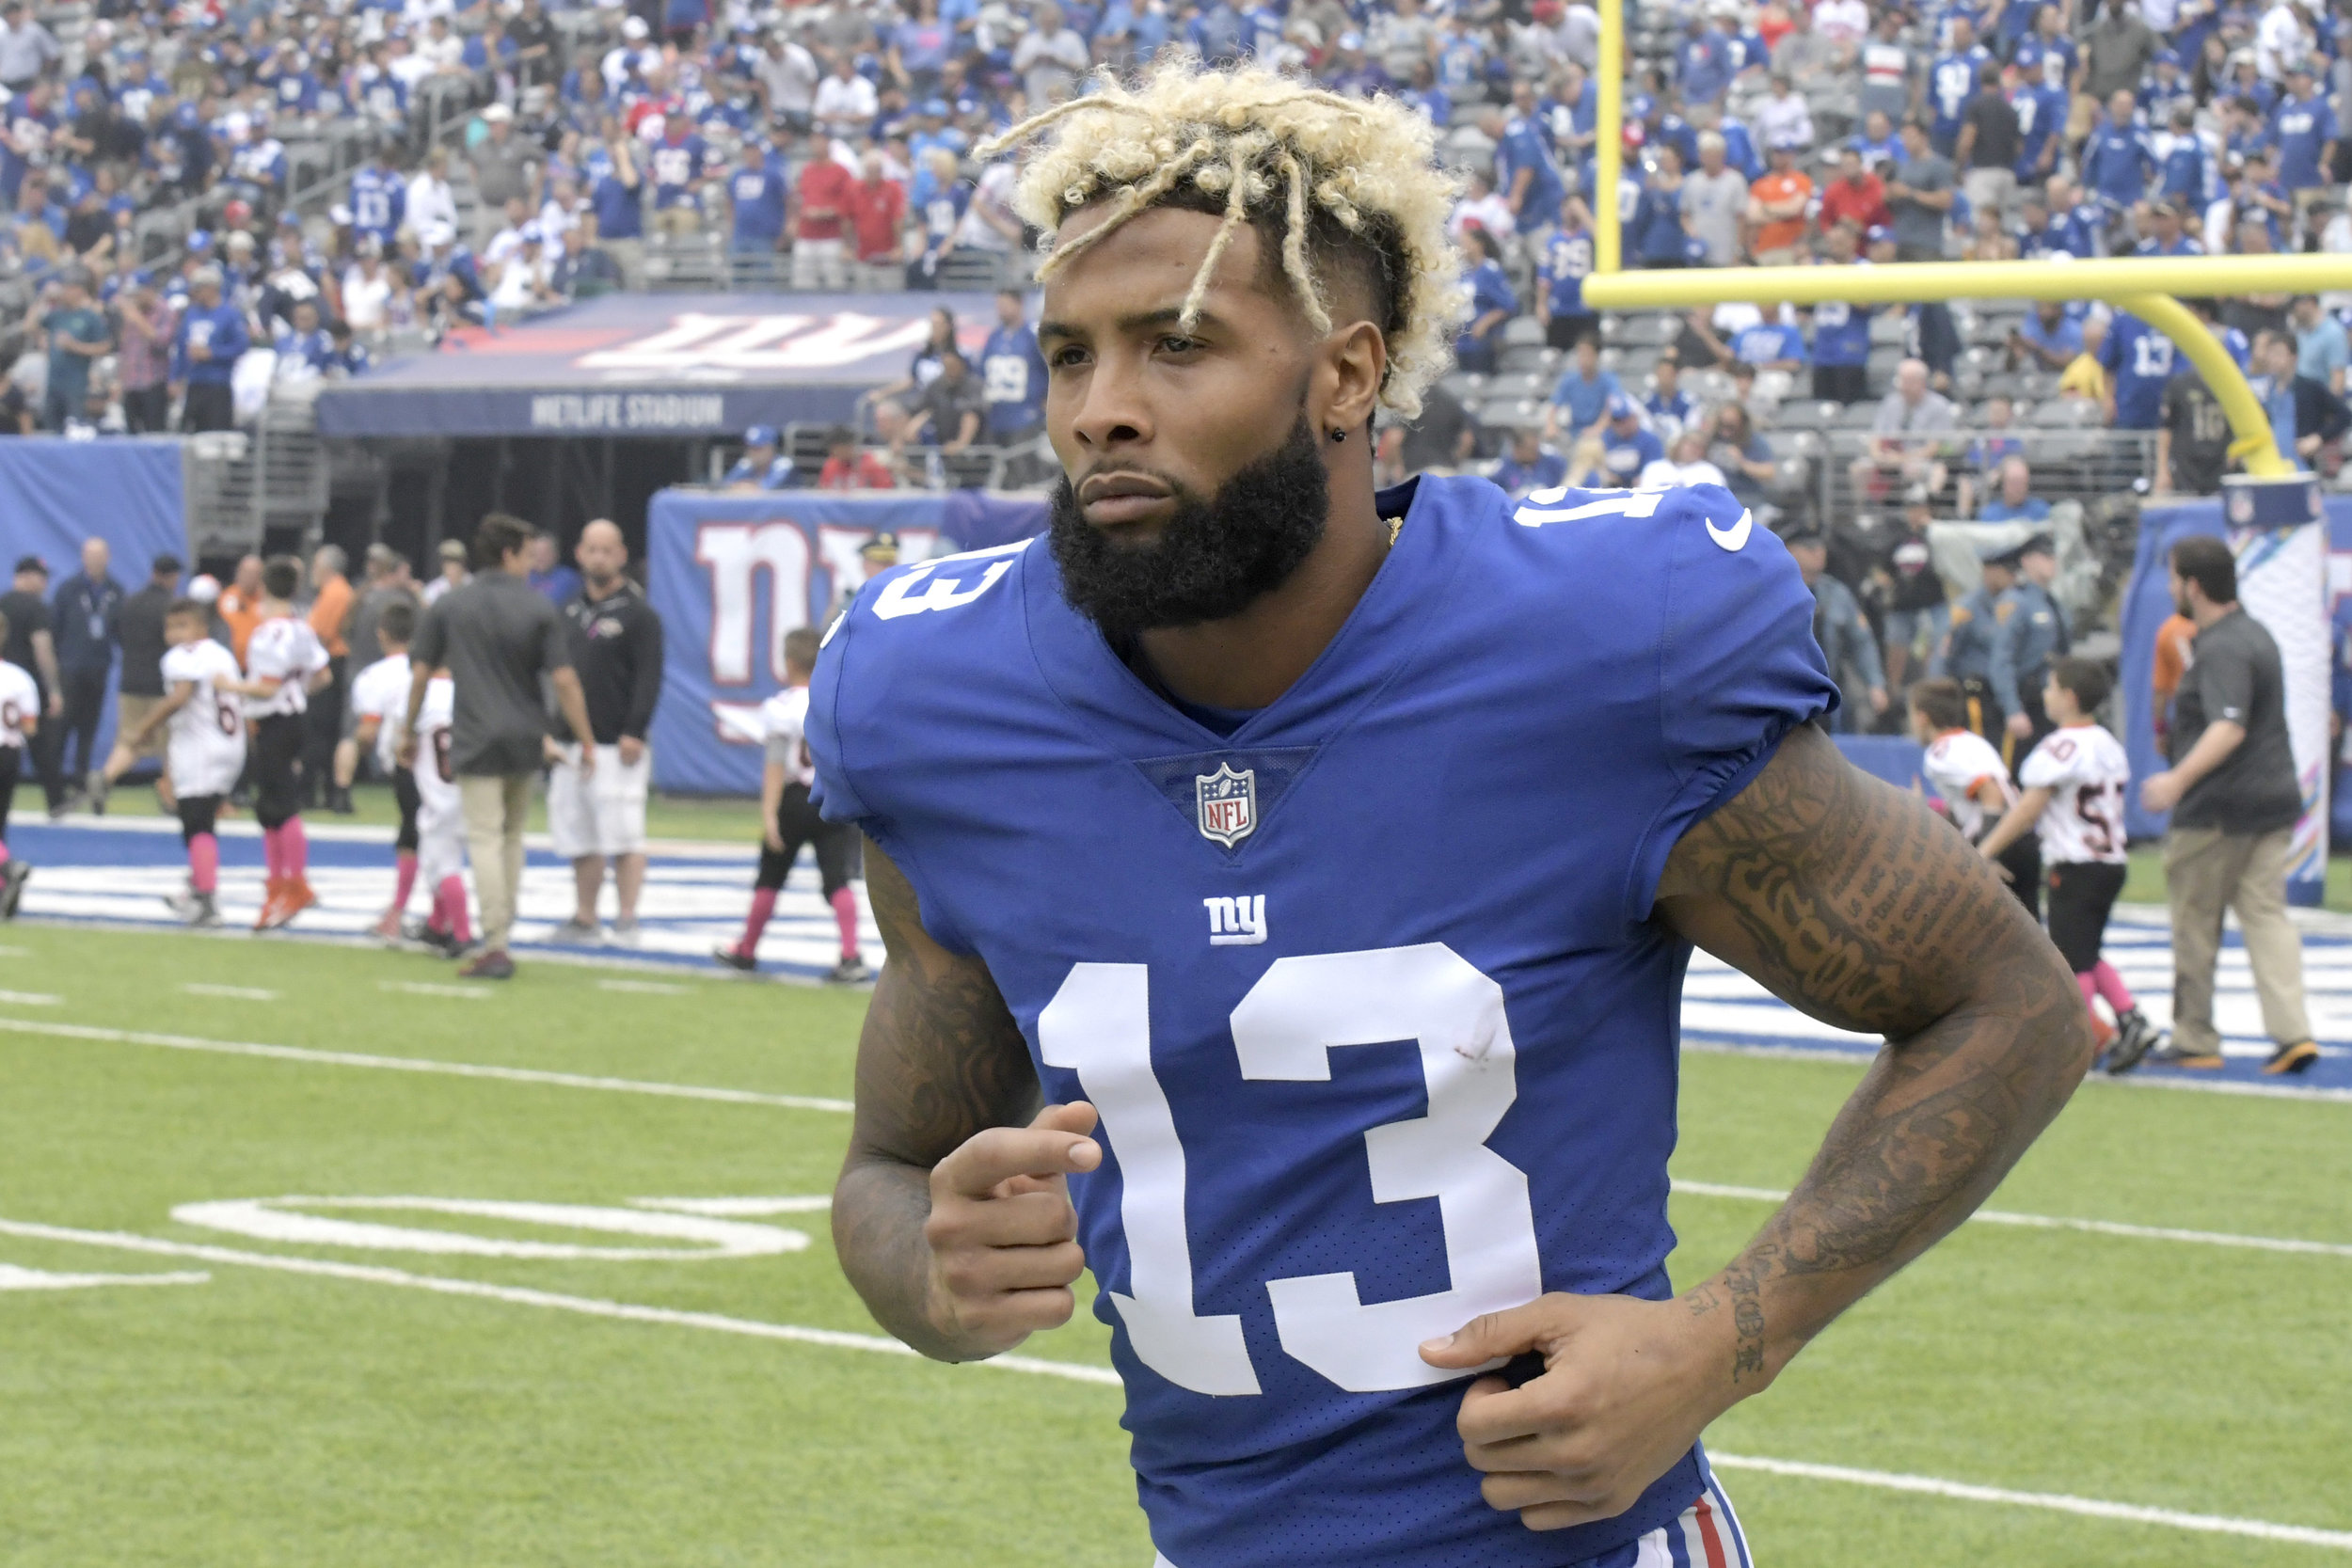 "FILE - In this Oct. 8, 2017, file photo, New York Giants wide receiver Odell Beckham warms up prior to an NFL football game against the Los Angeles Chargers, in East Rutherford, N.J. Giants coach Pat Shurmur says he expects Odell Beckham Jr. to attend offseason workouts when they start in April. Trade rumors are surrounding the controversial star receiver and there has been strong speculation Beckham will hold out during training camp because he doesn't want to play the fifth and final year of his rookie deal without a new contract. ""All reports are he will be ready to go as we get going,"" Shurmur said Tuesday morning, March 27, 2018, at the NFL meetings. (AP Photo/Bill Kostroun, File)"